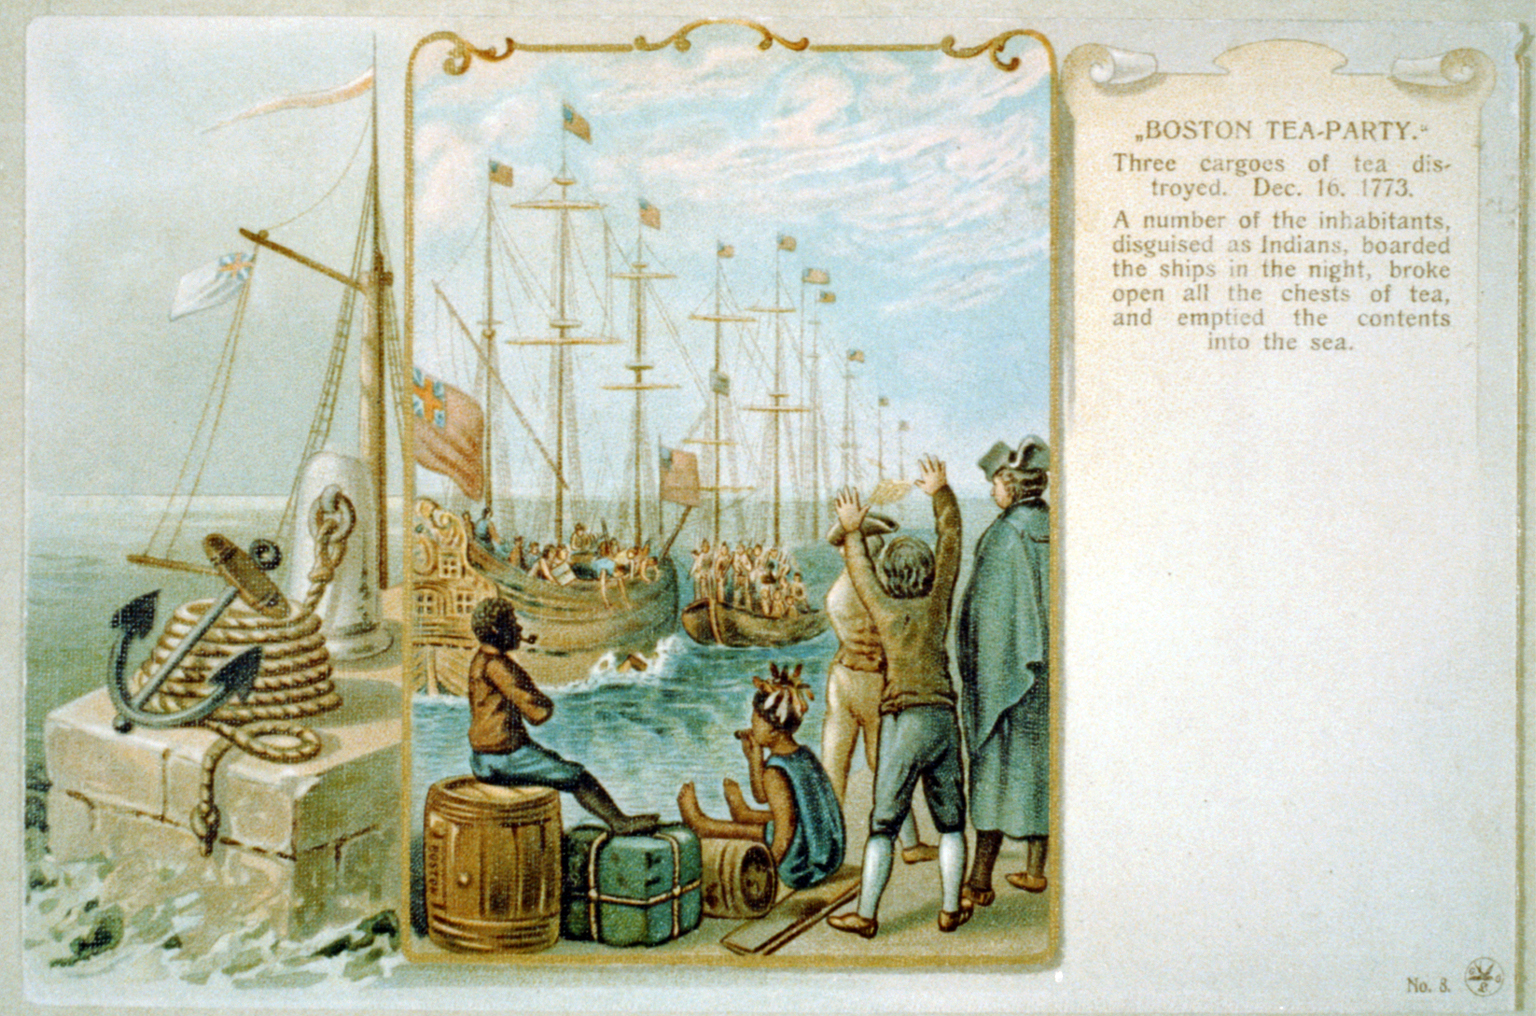 a history of the boston tea party A very historical event in us history happened on december 16, 1773 it would be known has the boston tea party.